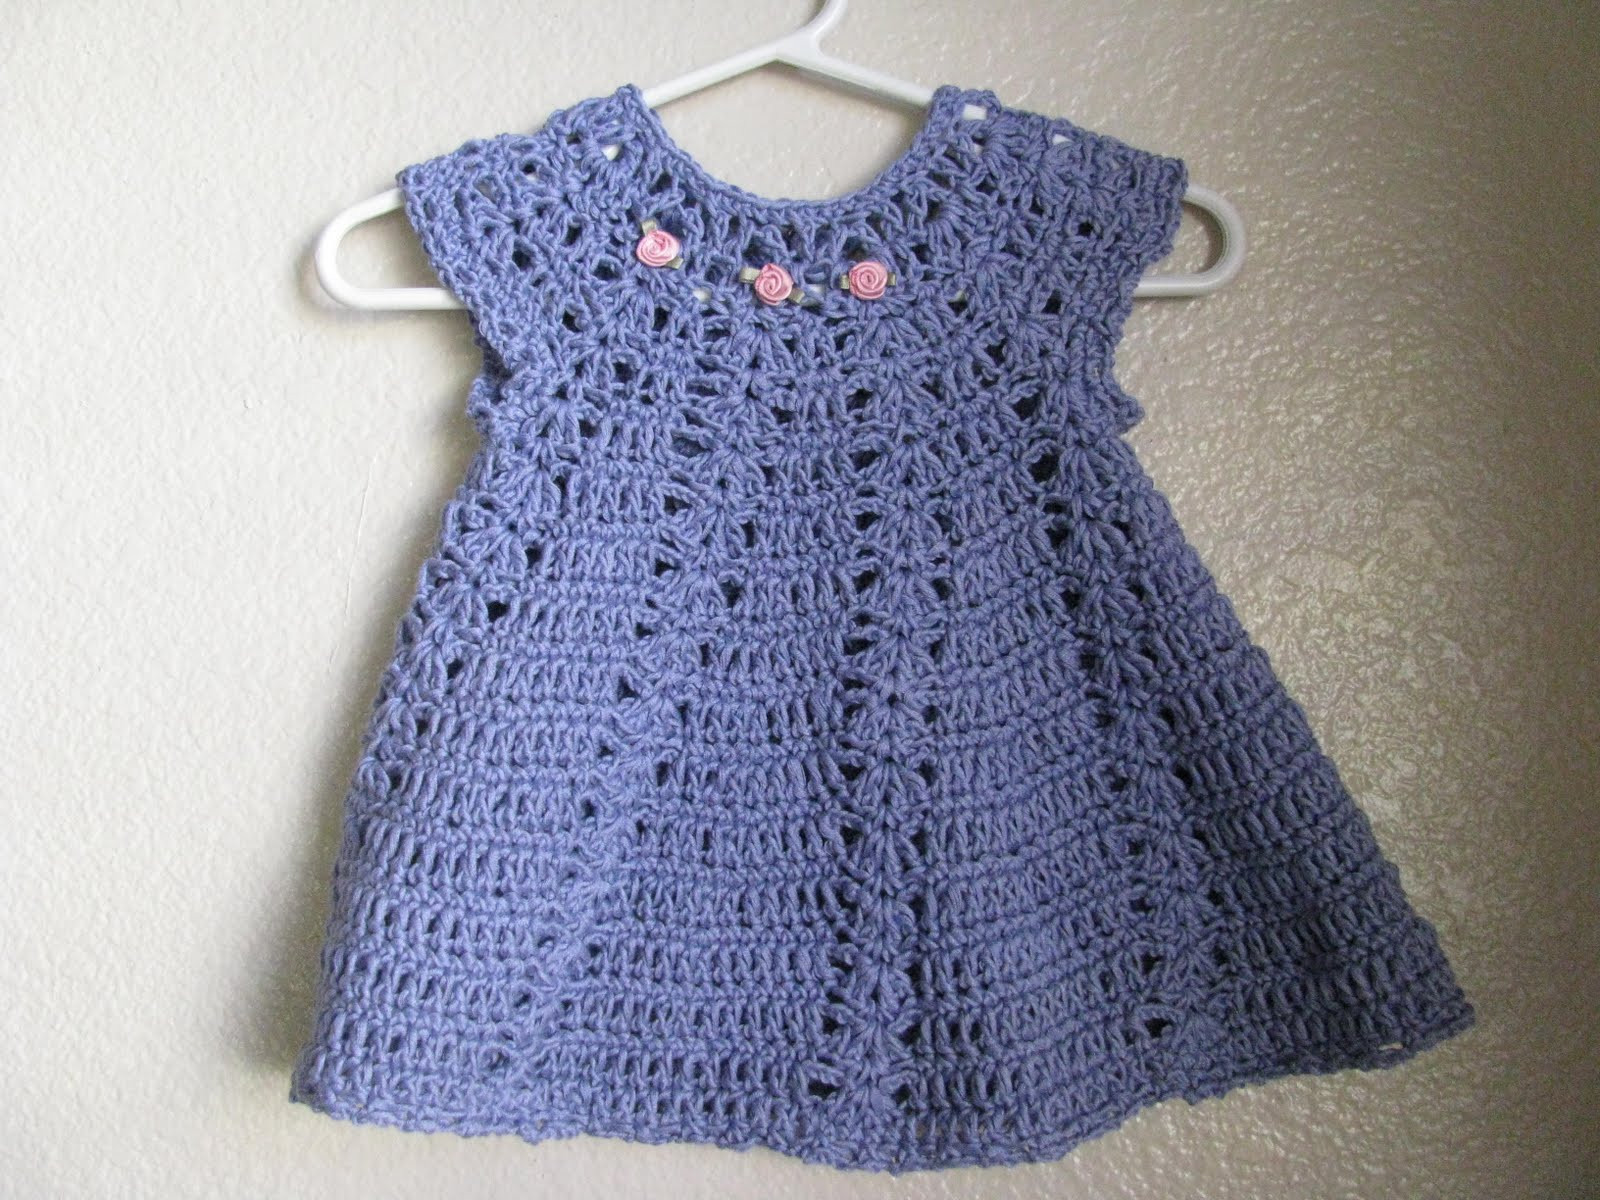 Baby Clothes Patterns New My Latest Project My First Crocheted Baby Dress Finished Of Wonderful 46 Pictures Baby Clothes Patterns